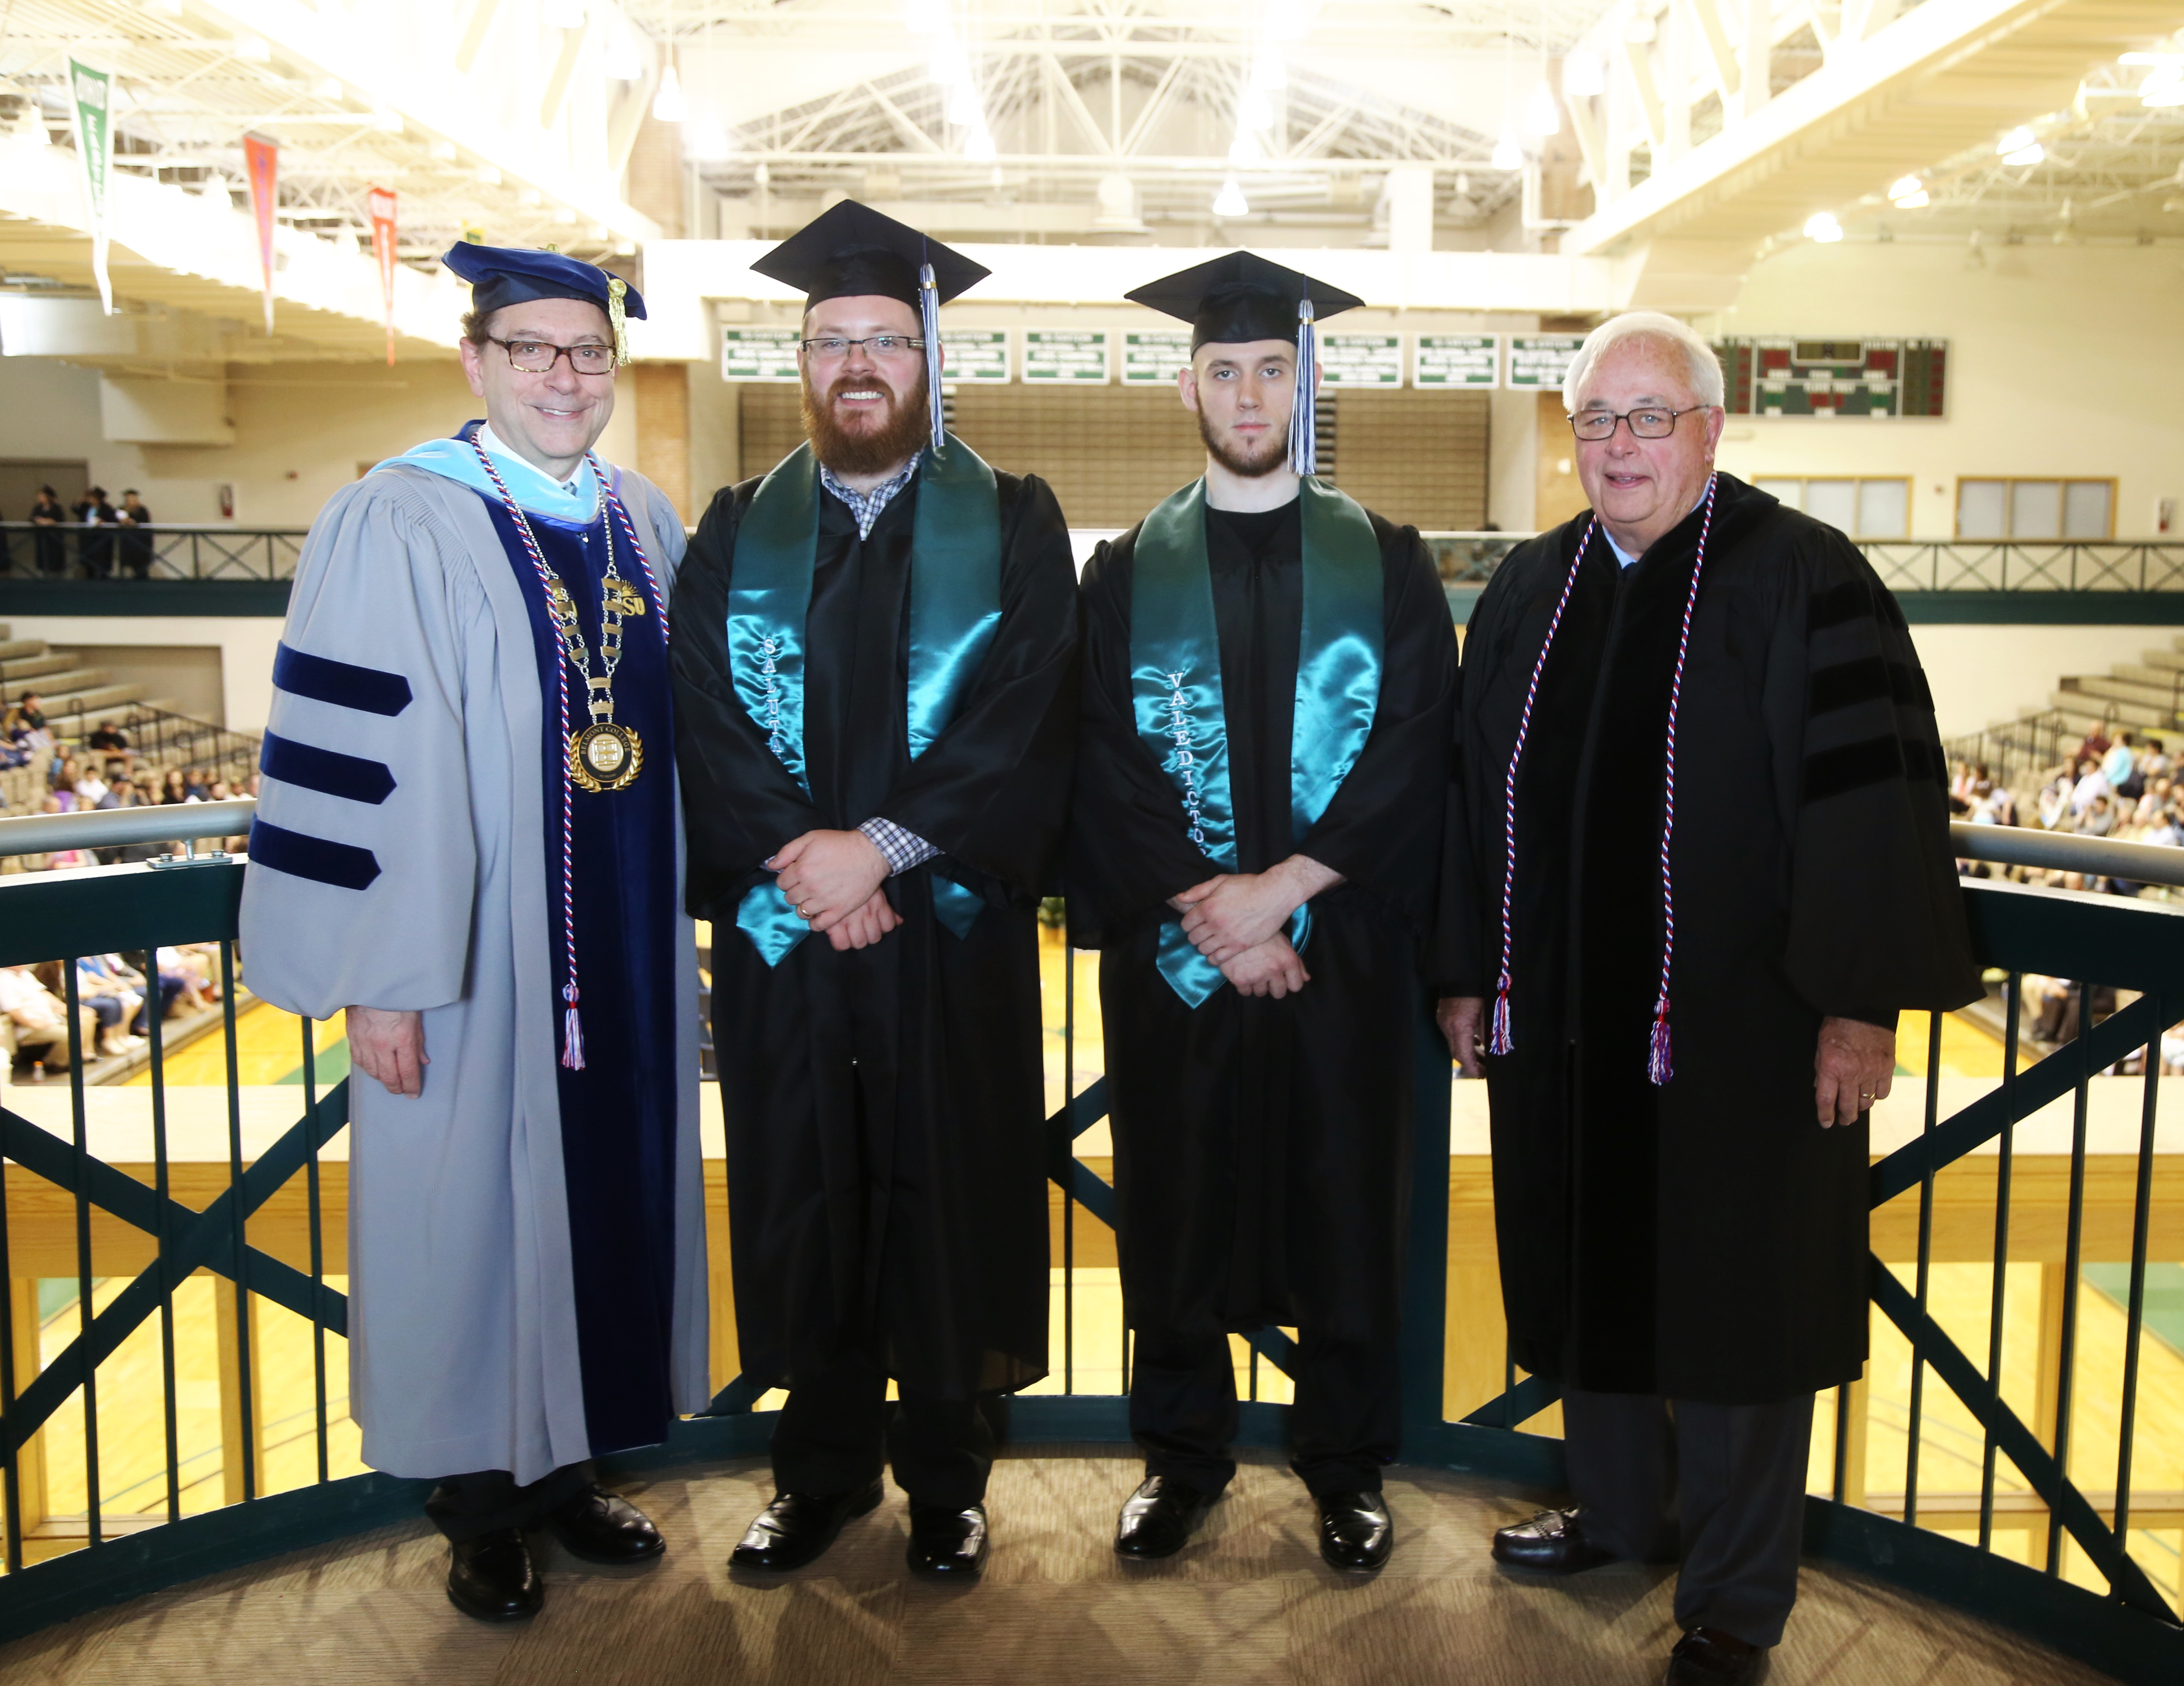 Attached photo (left to right):  Dr. Paul Gasparro,Belmont College President; Nicholas Jacobs, Co-Salutatorian; Jared Allen, Valedictorian; and  St. Clairsville Mayor Terry Pugh, who served as commencement speaker.